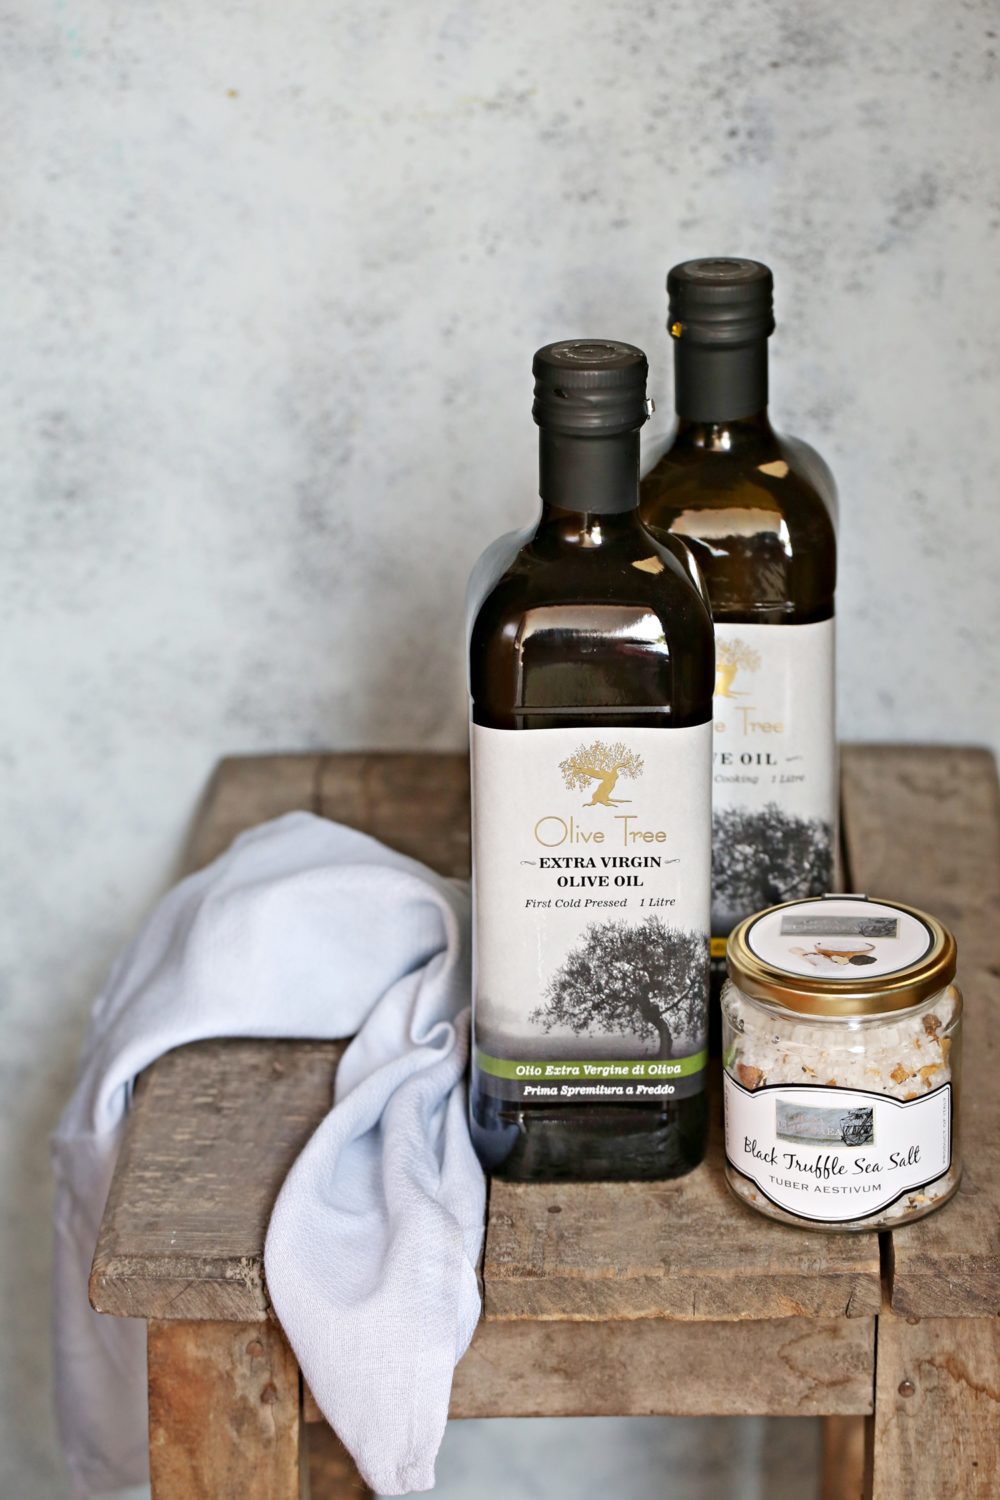 Olive Oil & Black Truffle Sea Salt